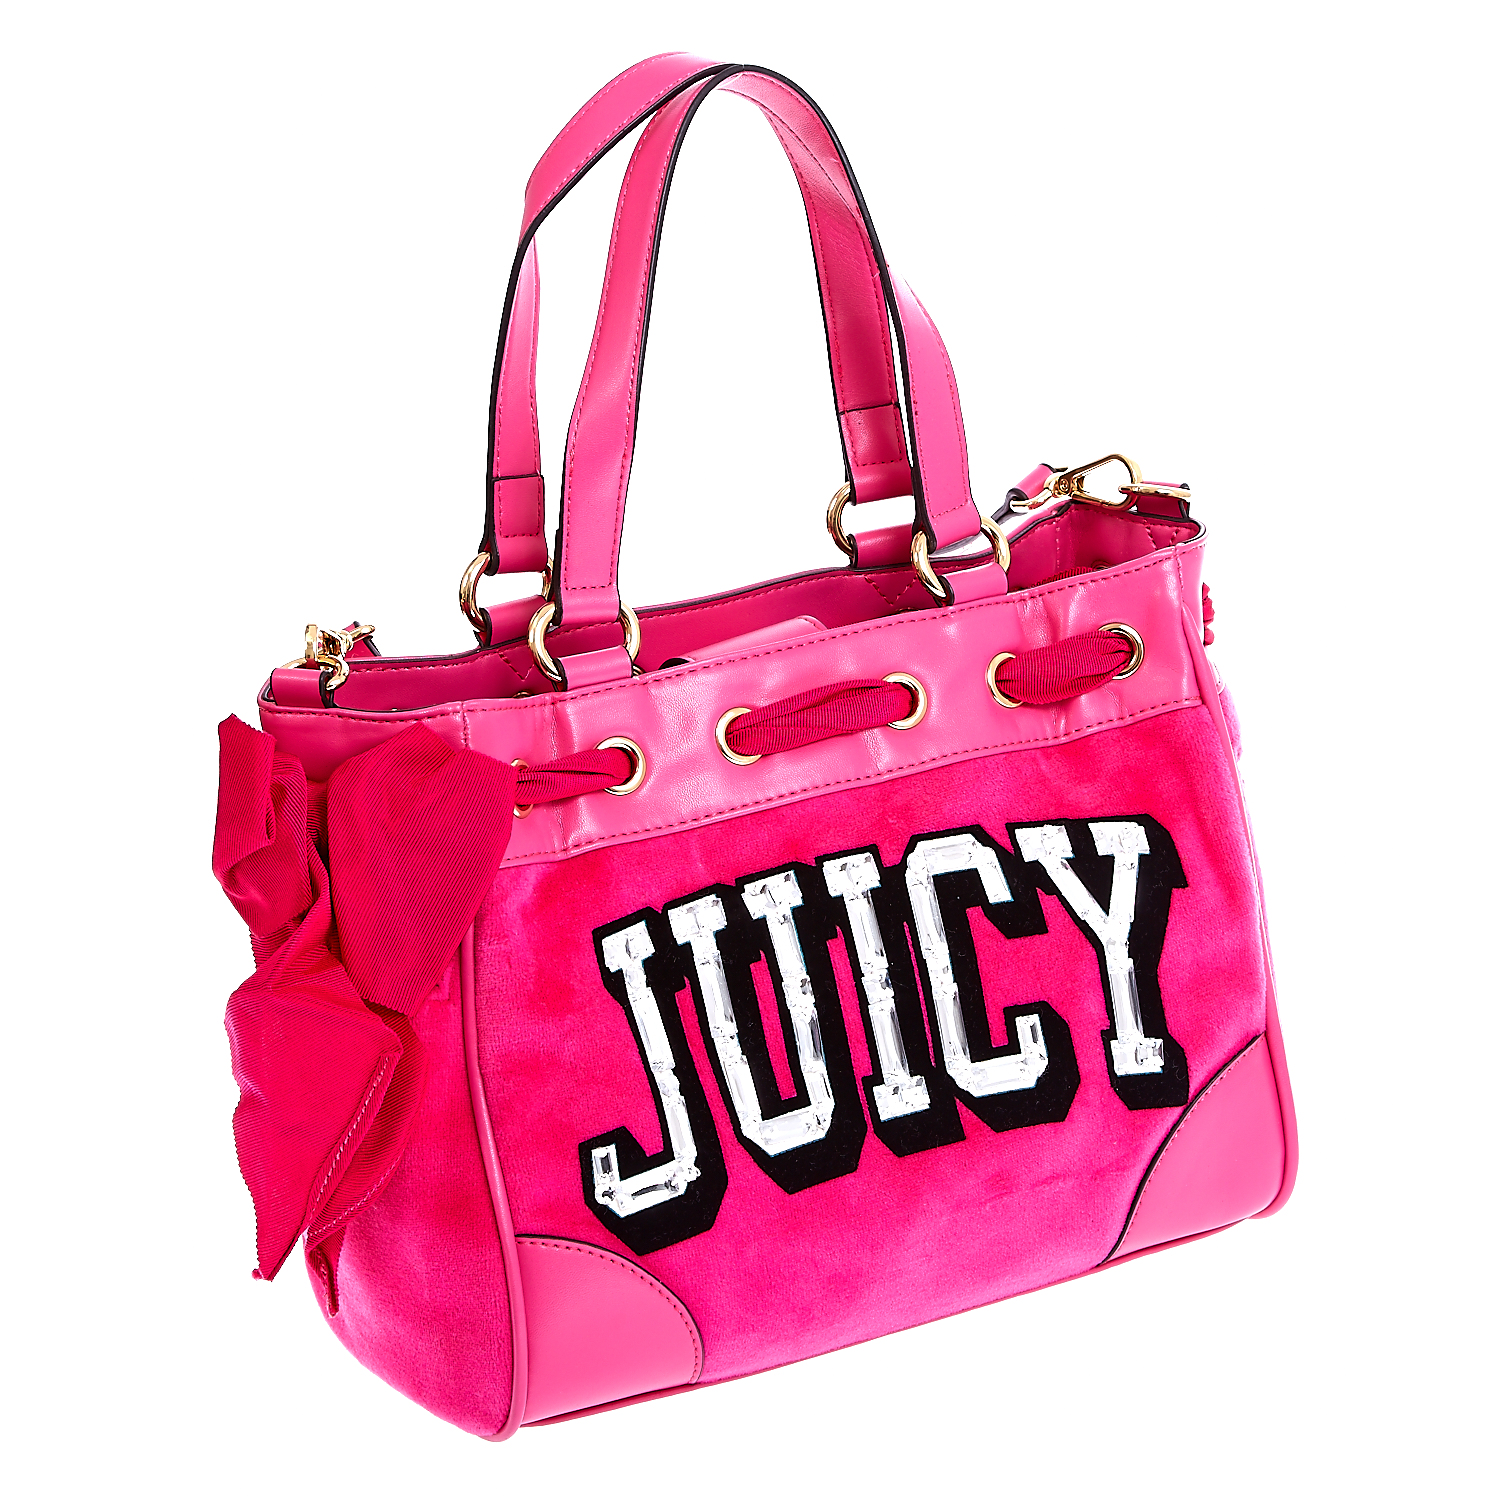 JUICY COUTURE – Τσάντα Juicy Couture φούξια 1409491.0-00P4